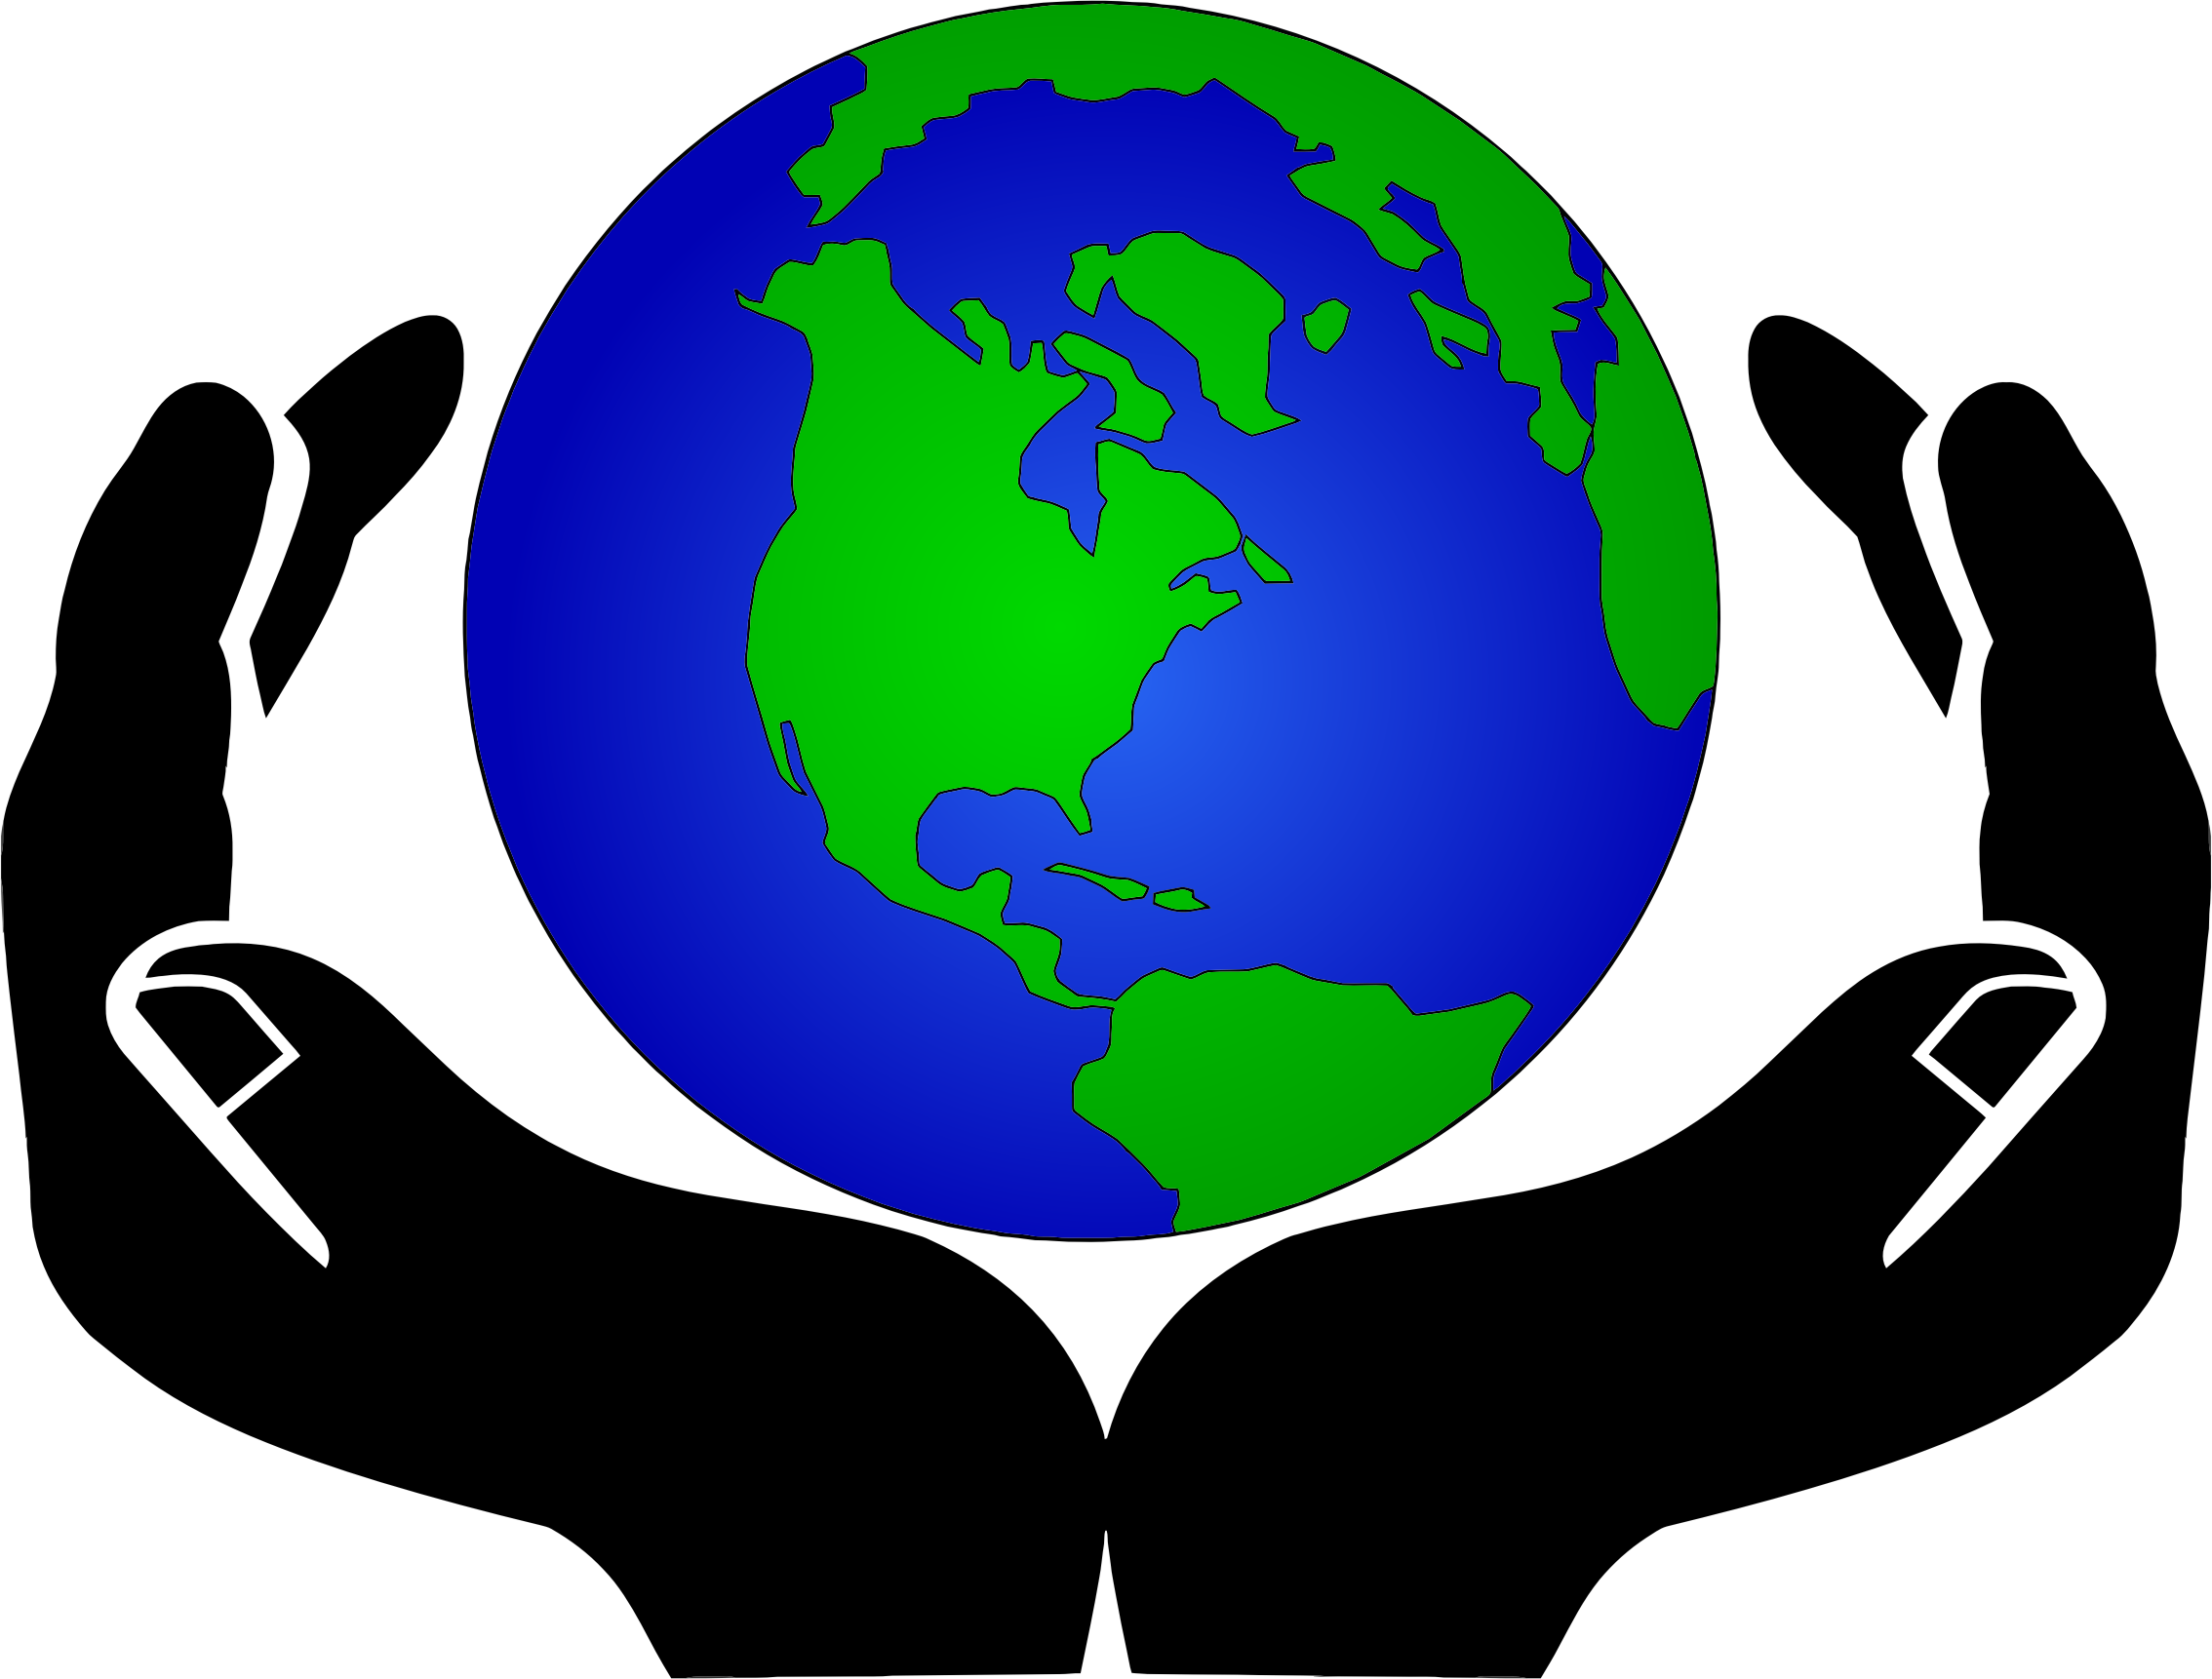 World top globe clip art free clipart image.